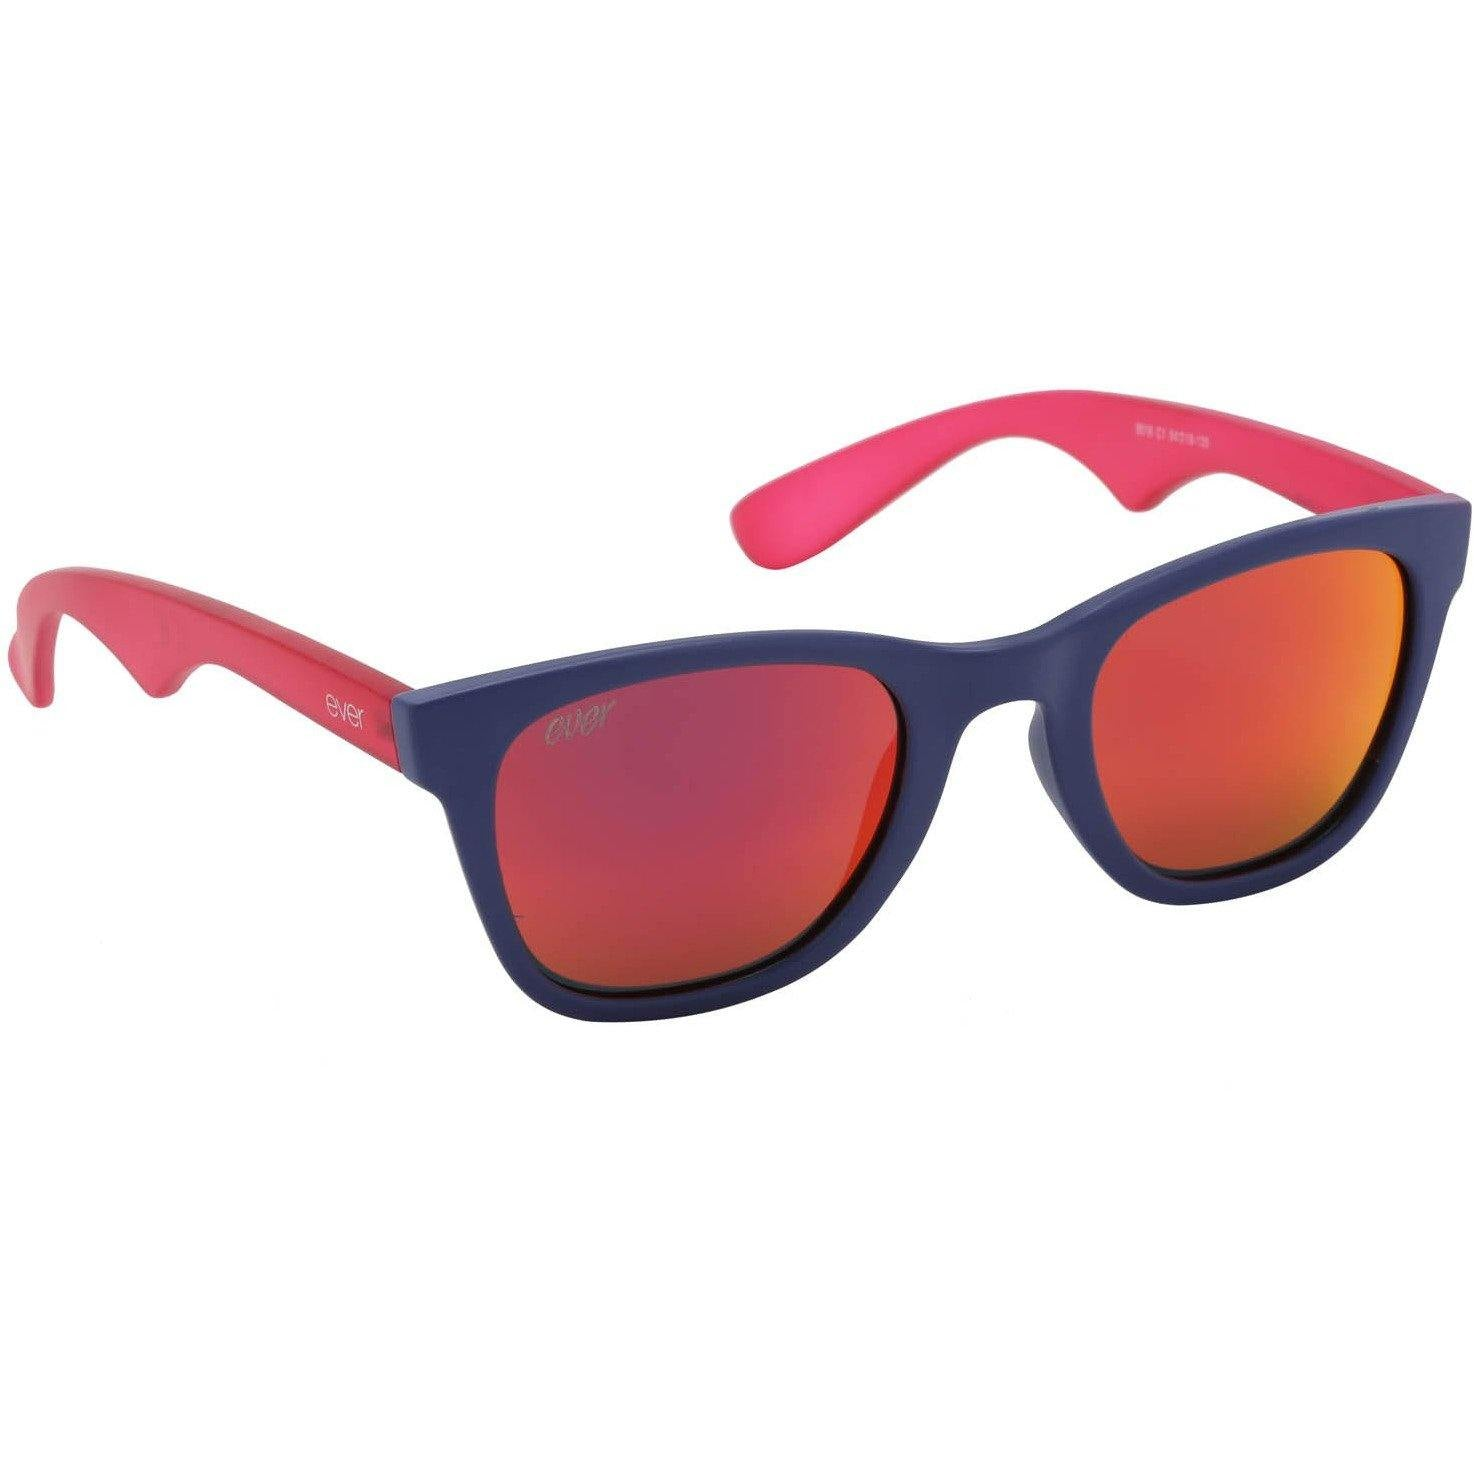 "Sports Sunglasses Designer Sunglasses Model ""Duck Sauce"" Red By: The Ever Collection"